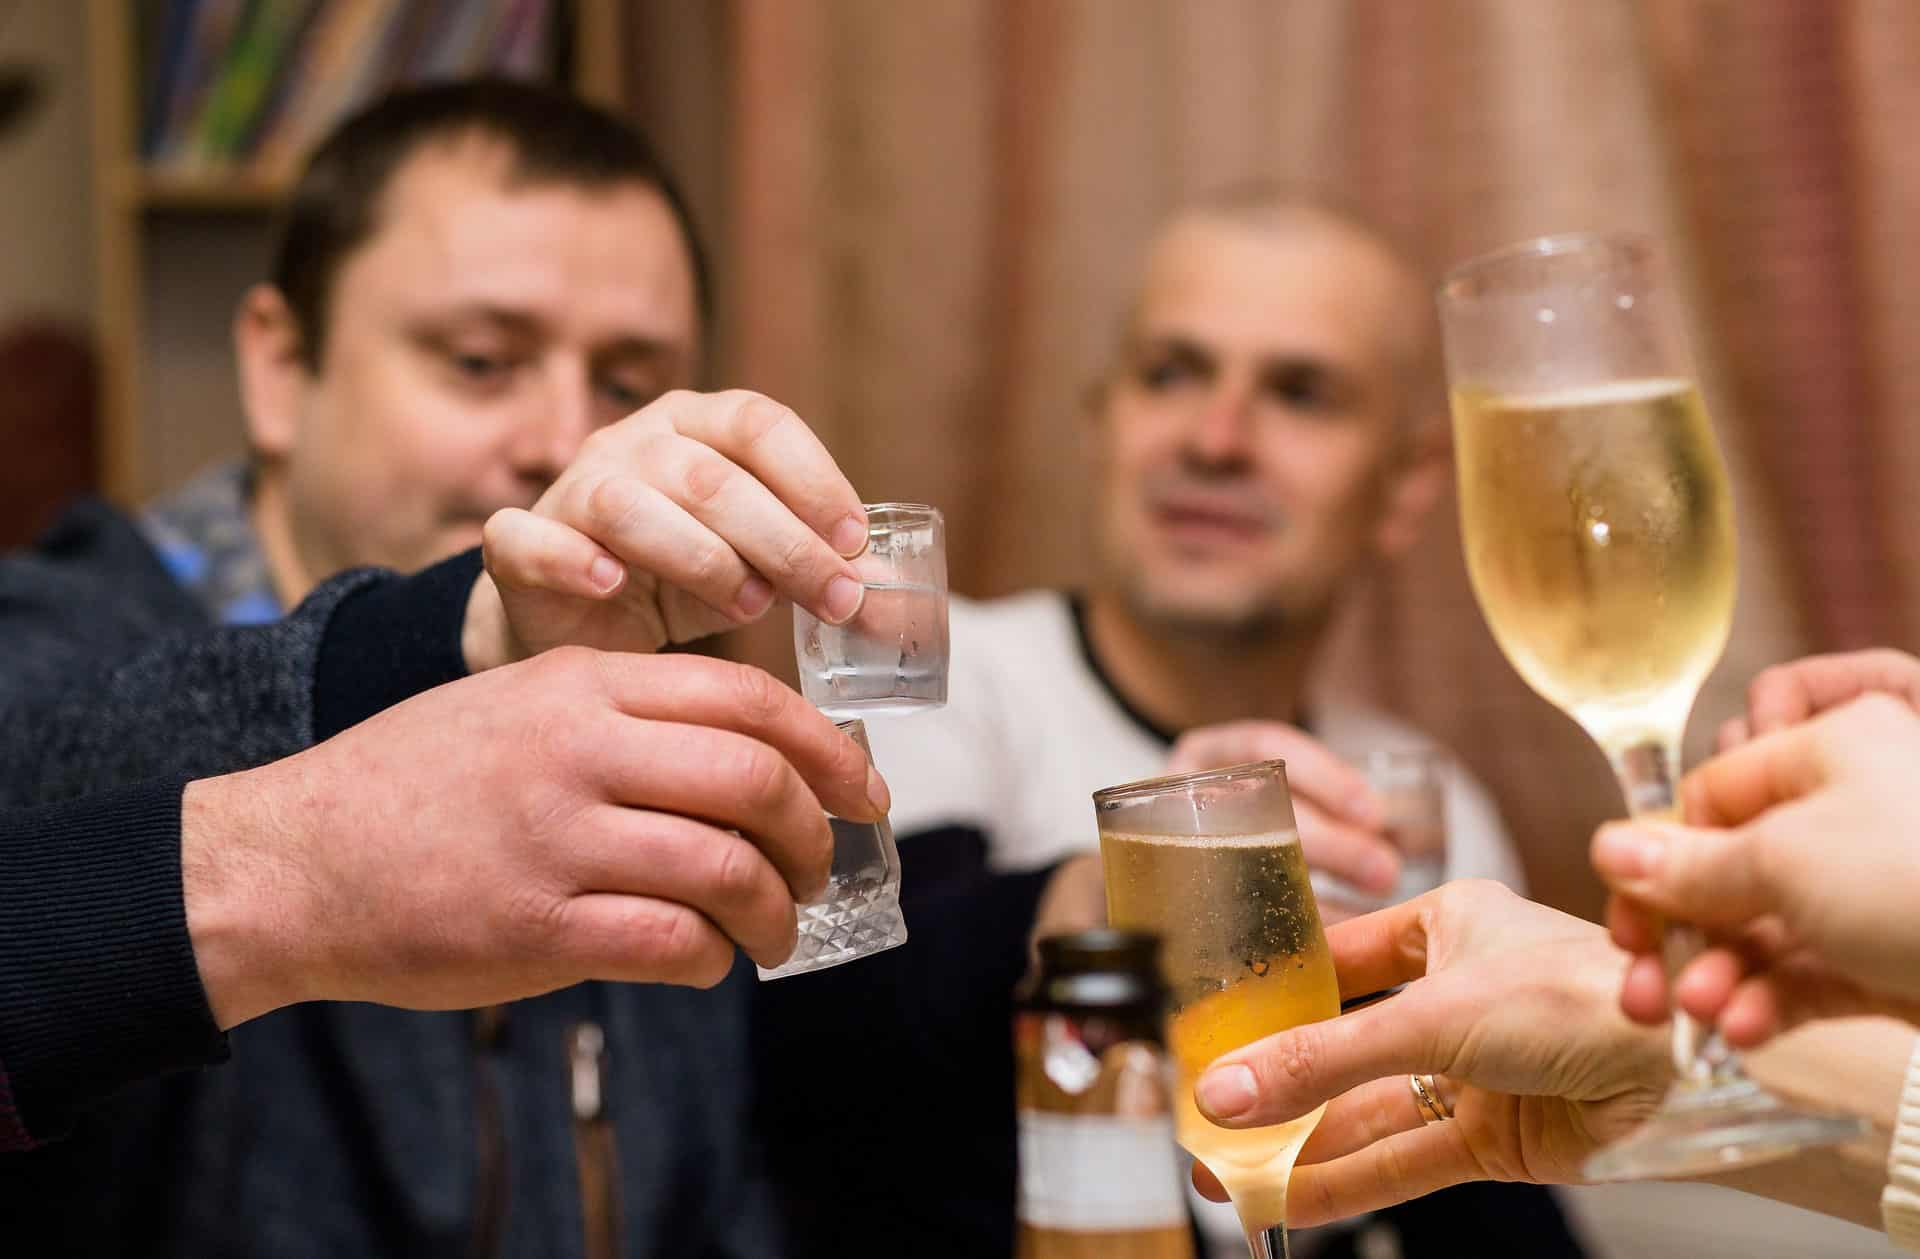 reversing the damage of an addition to drinking